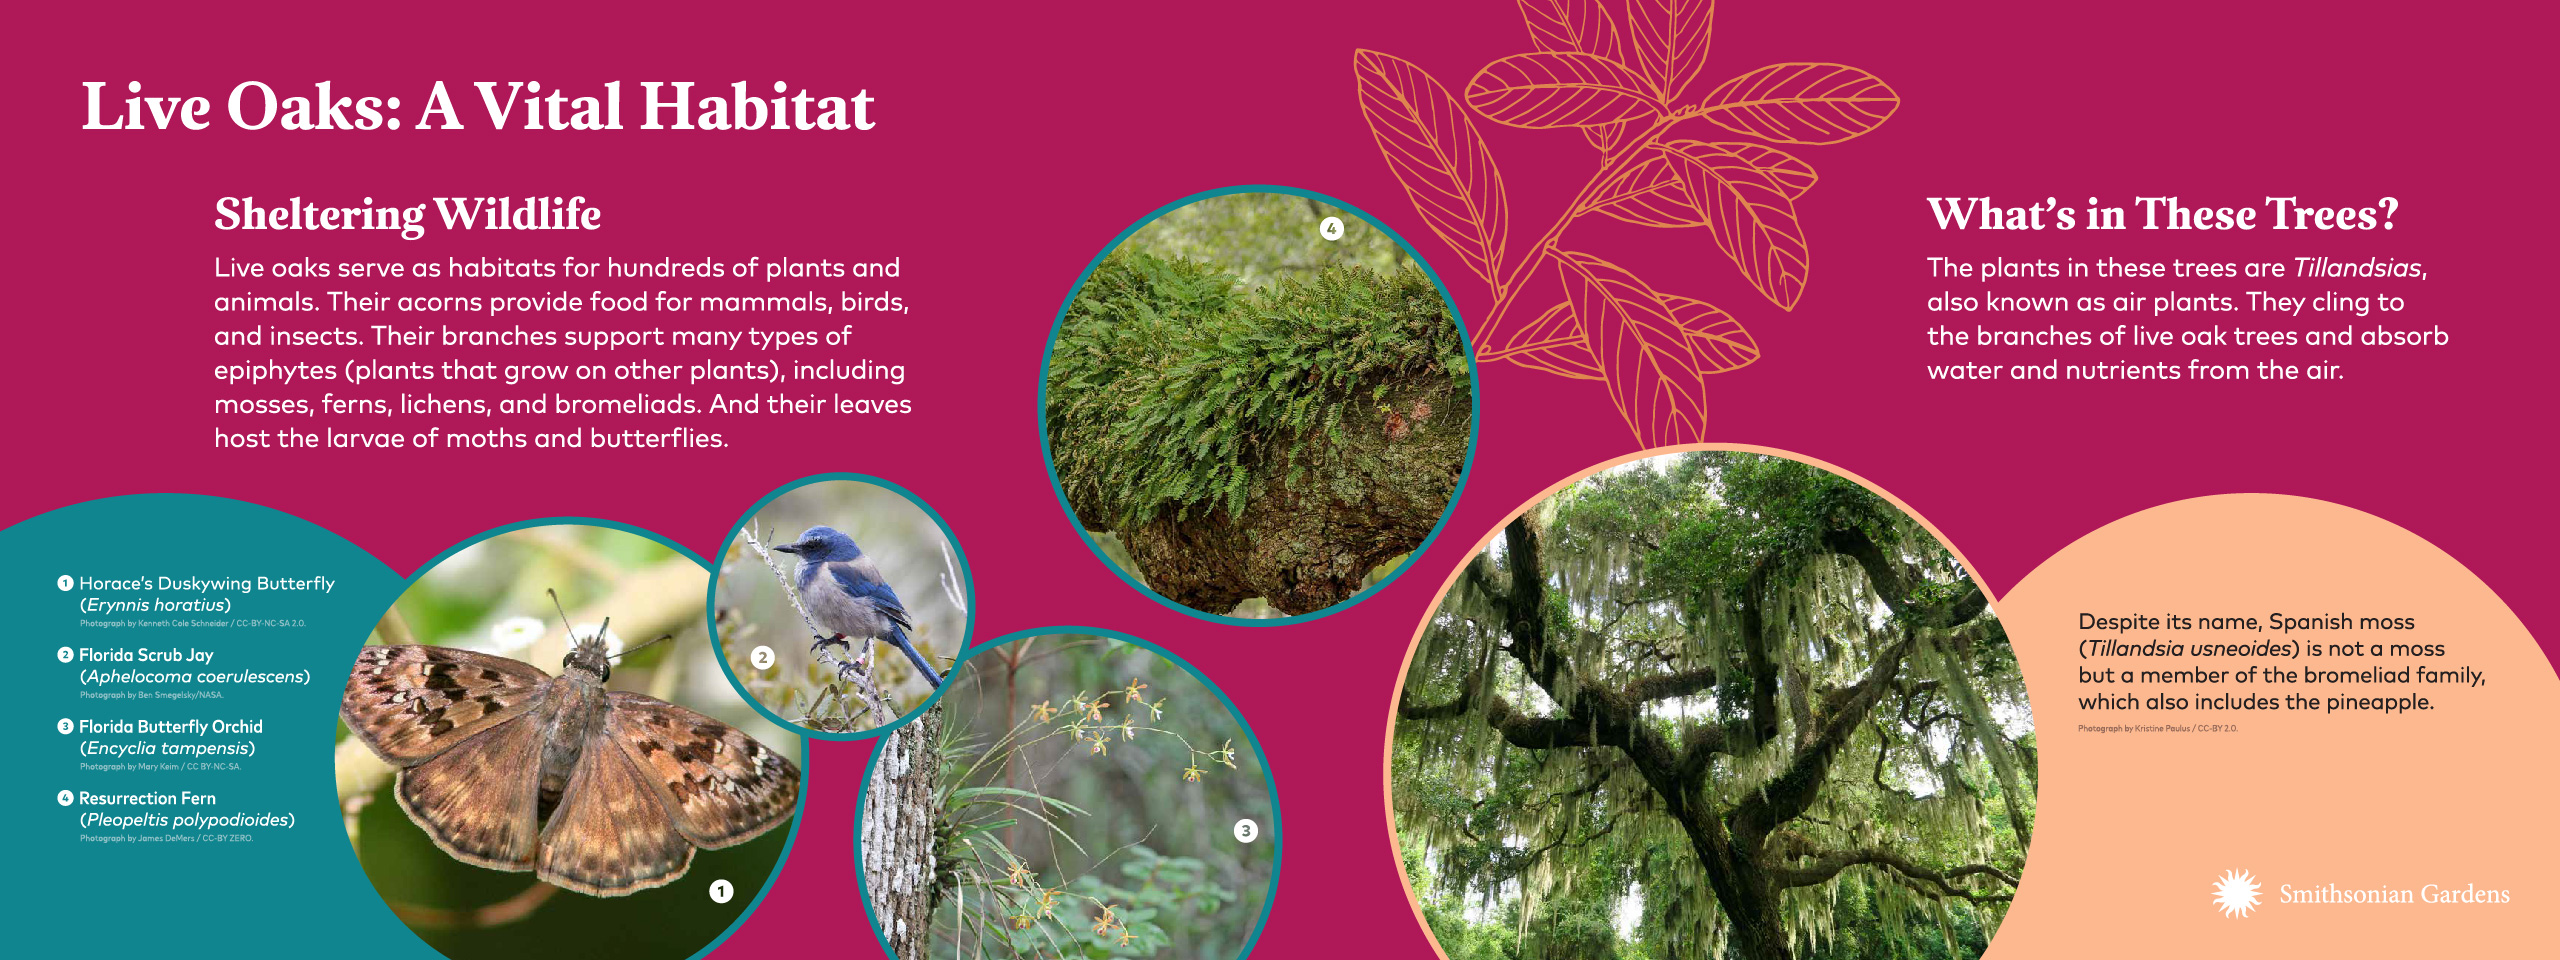 Live Oaks: A Vital Habitat exhibit panel